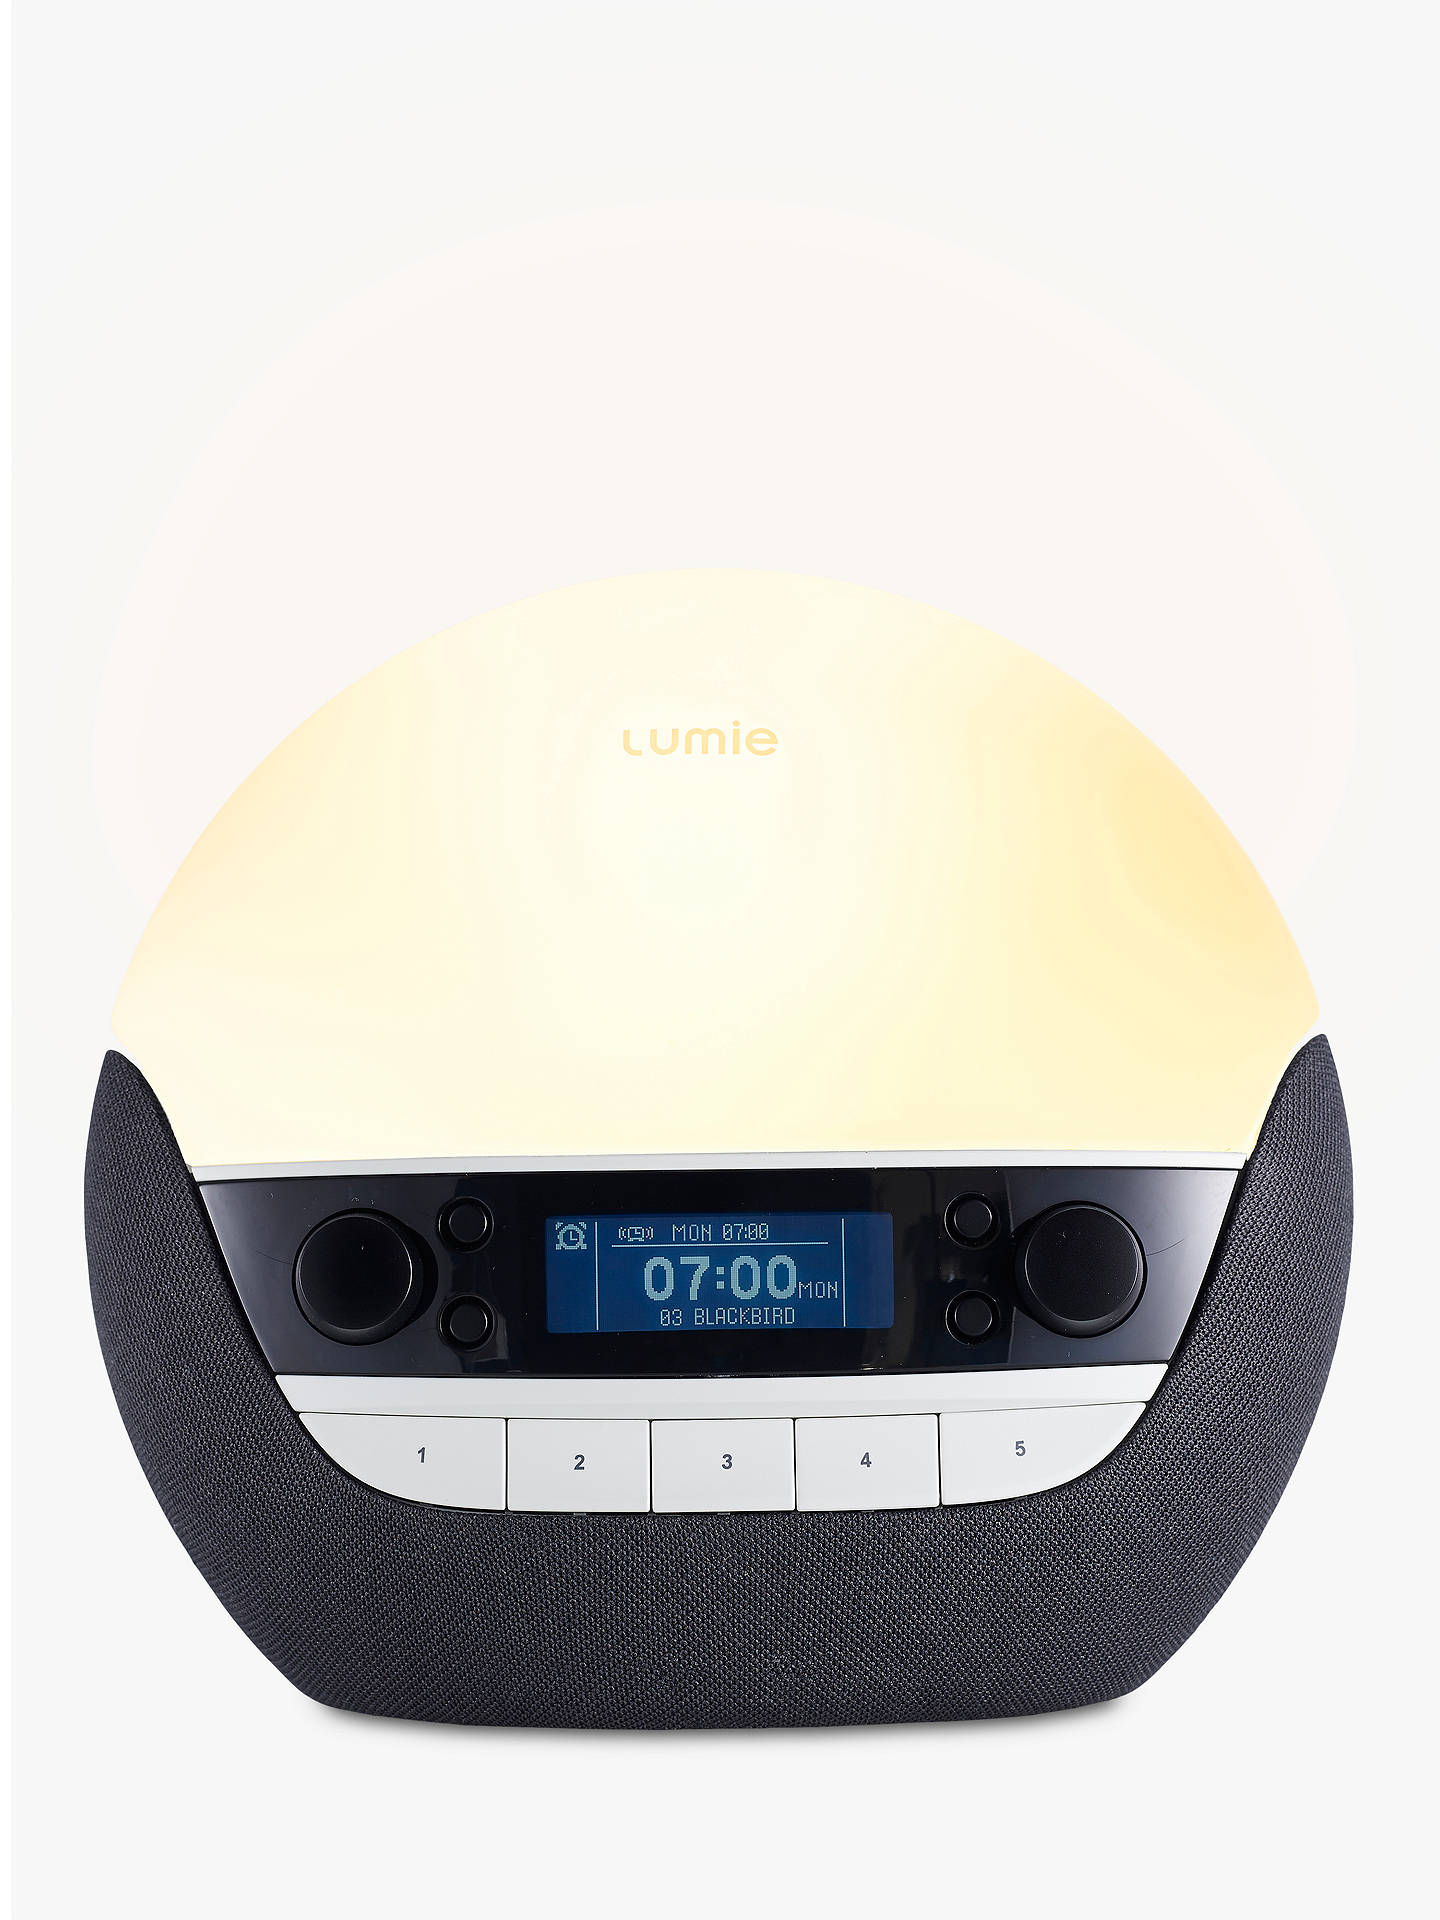 Buy Lumie Bodyclock Luxe 700 Wake up to Daylight SAD Light Online at johnlewis.com